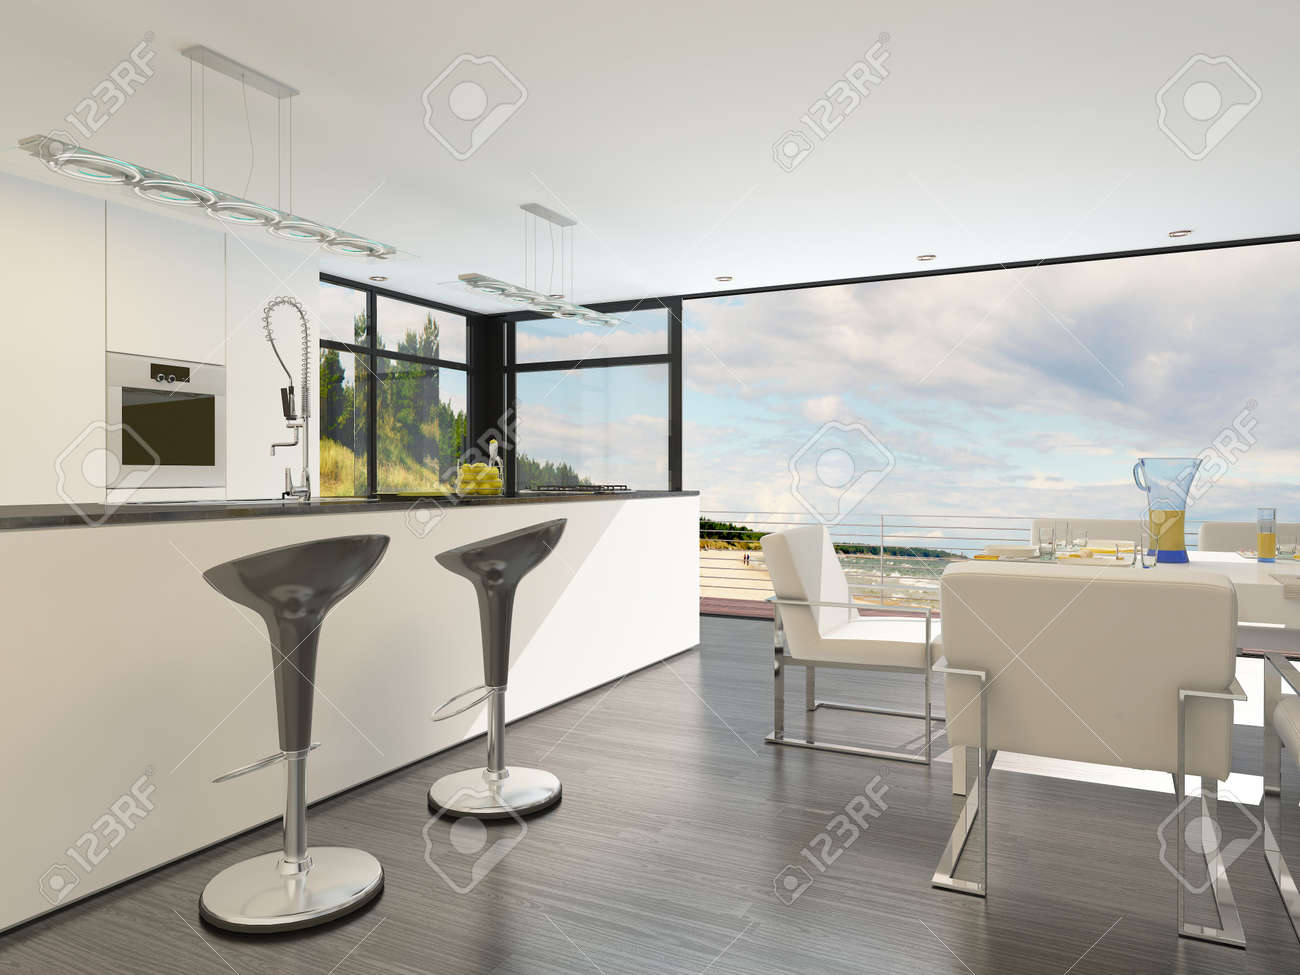 Modern Open Plan Kitchen With A Bar Counter With Stylish Contemporary Design  Bar Stools, Fitted